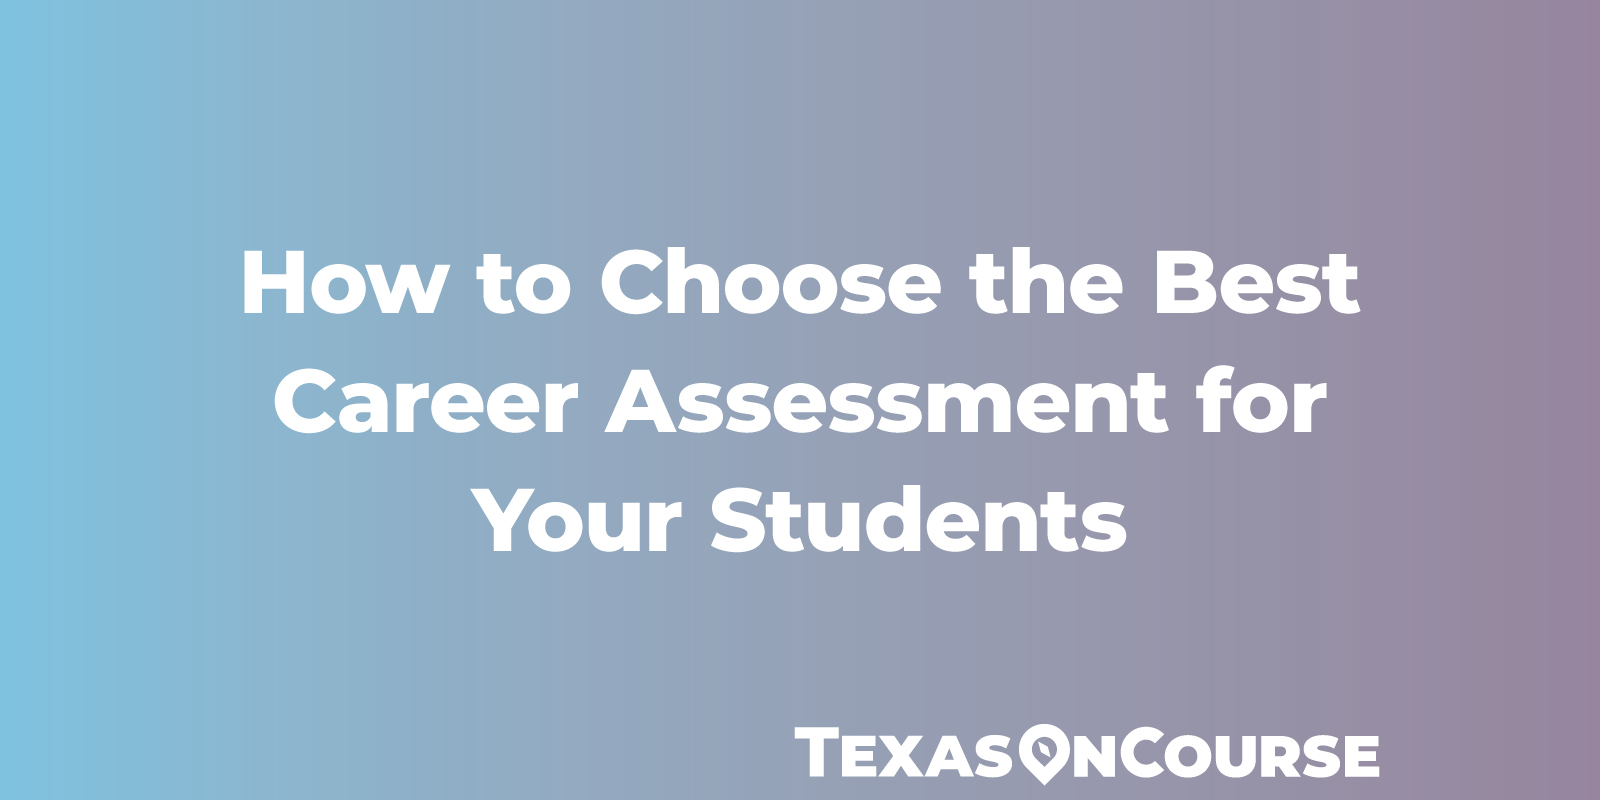 How to Choose the Best Career Assessment for Your Students